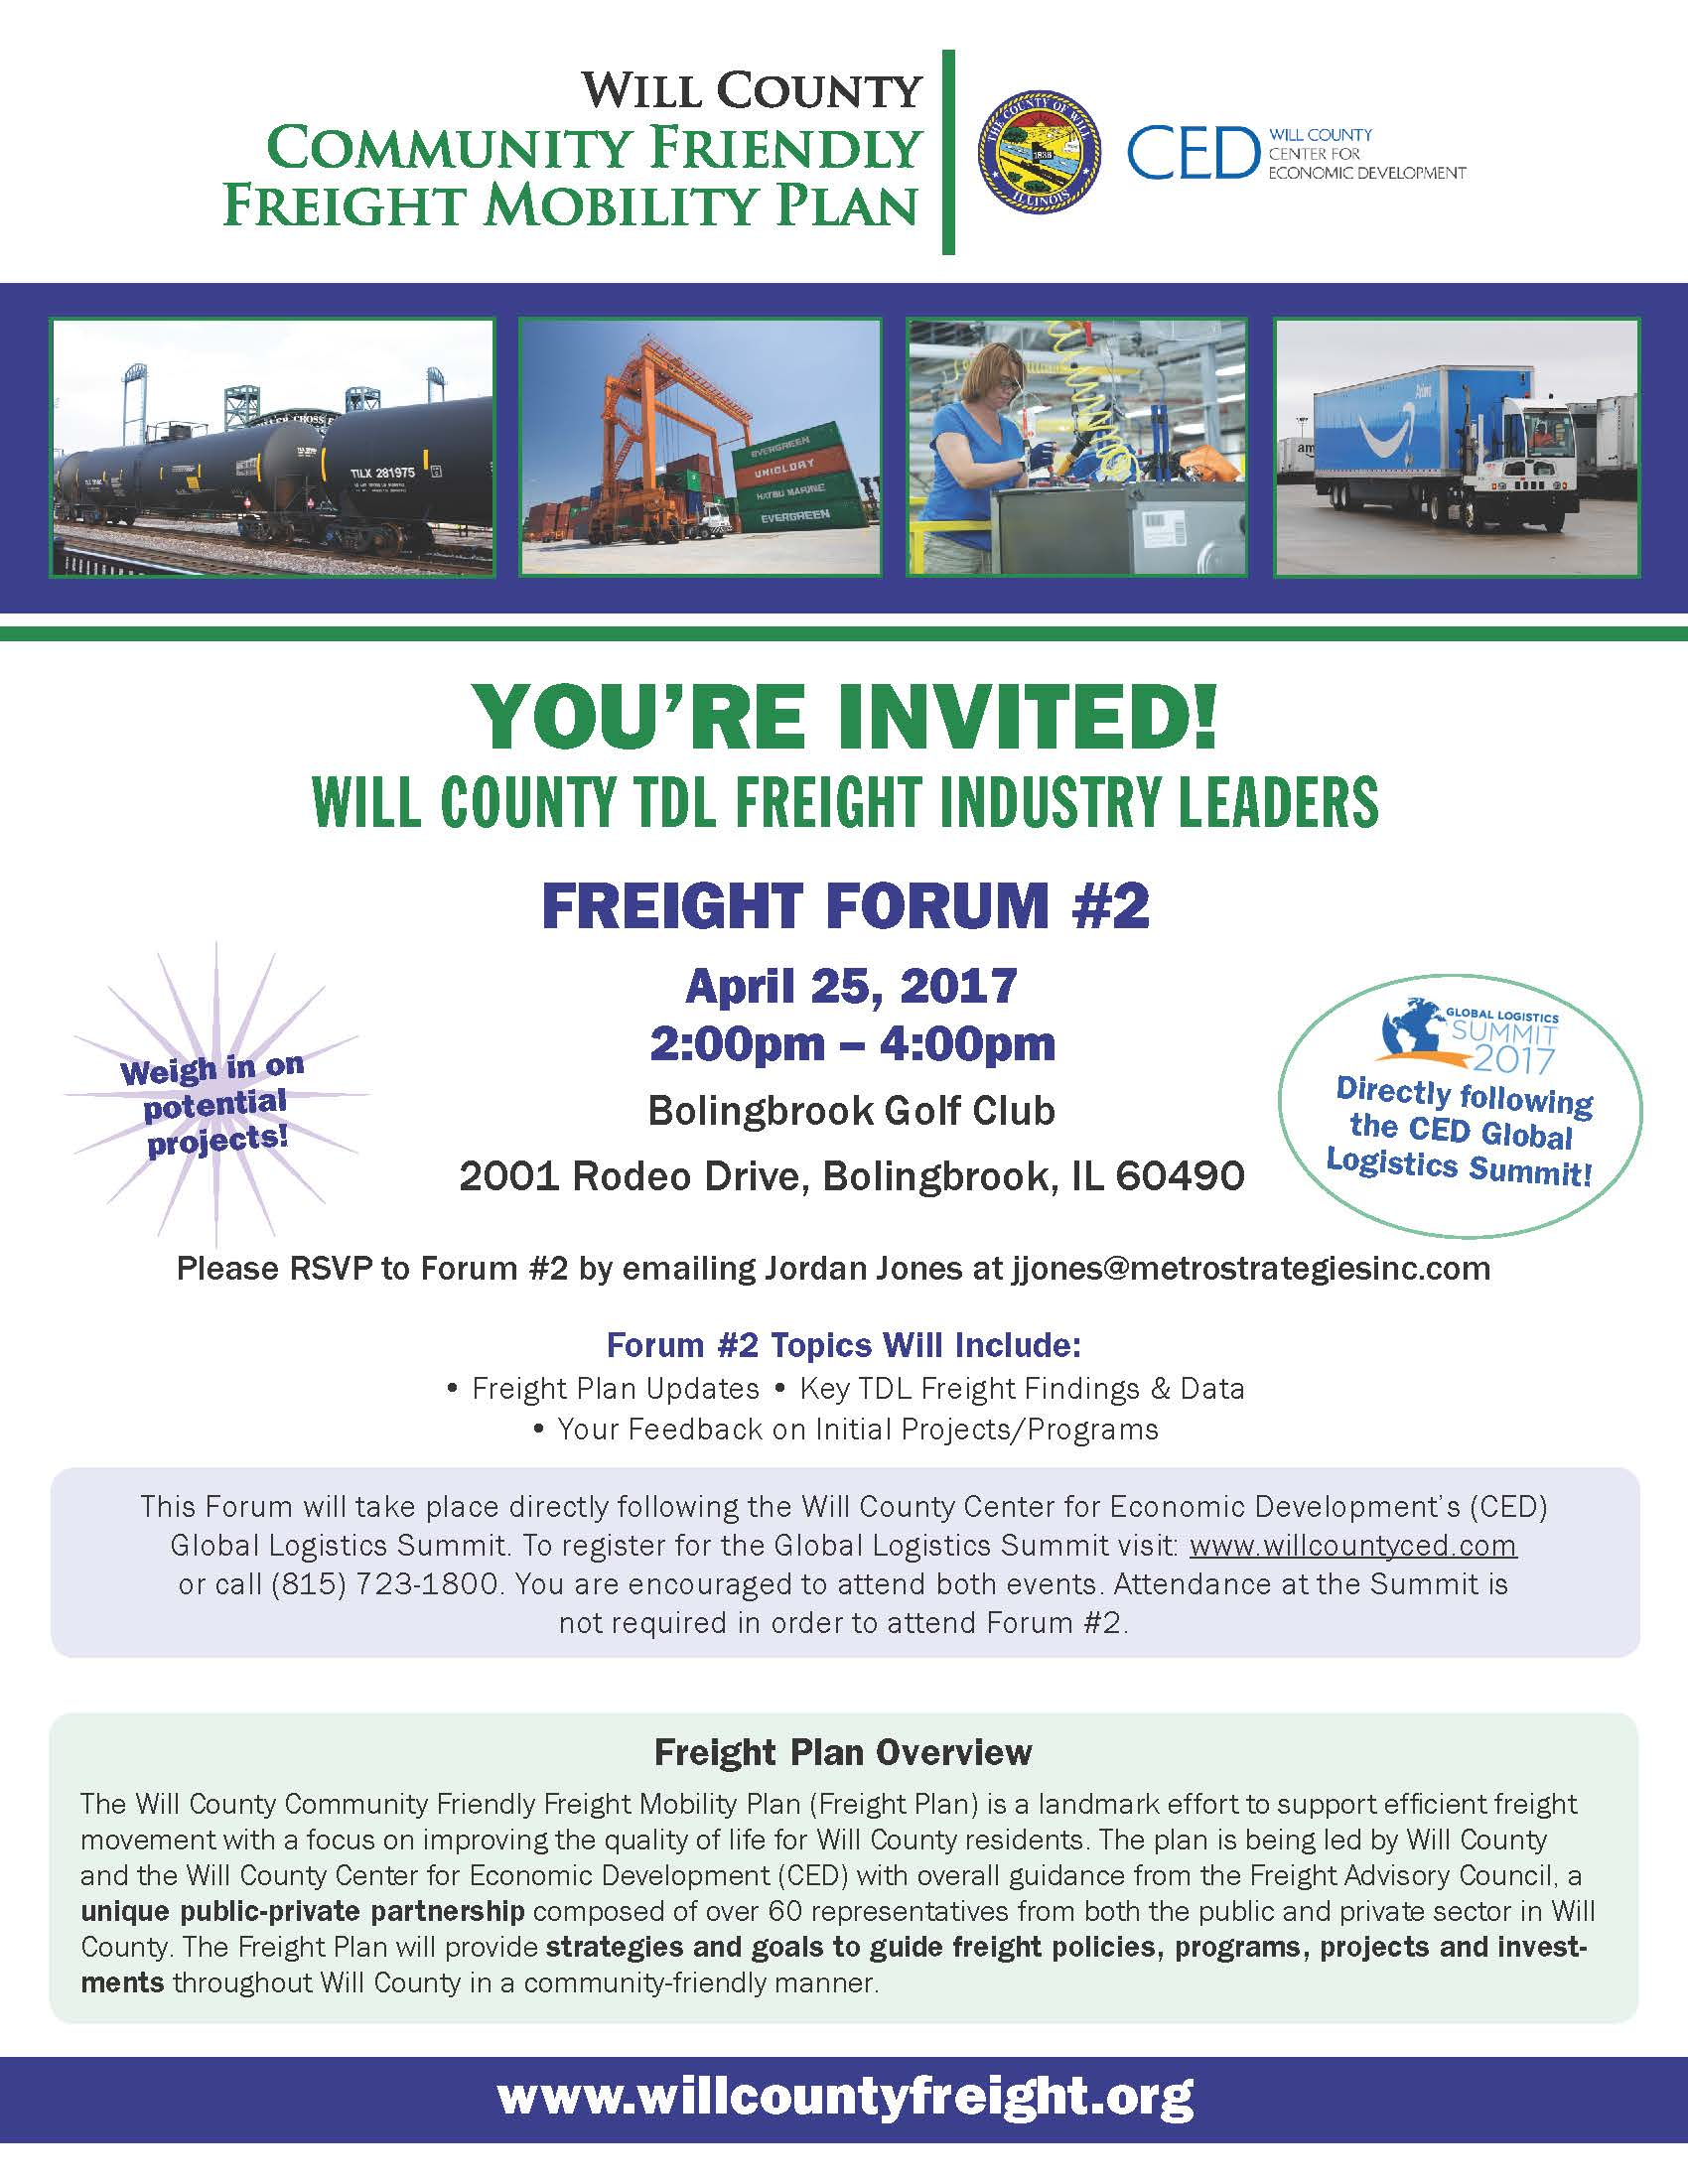 Will County Freight Industry Forum flyer